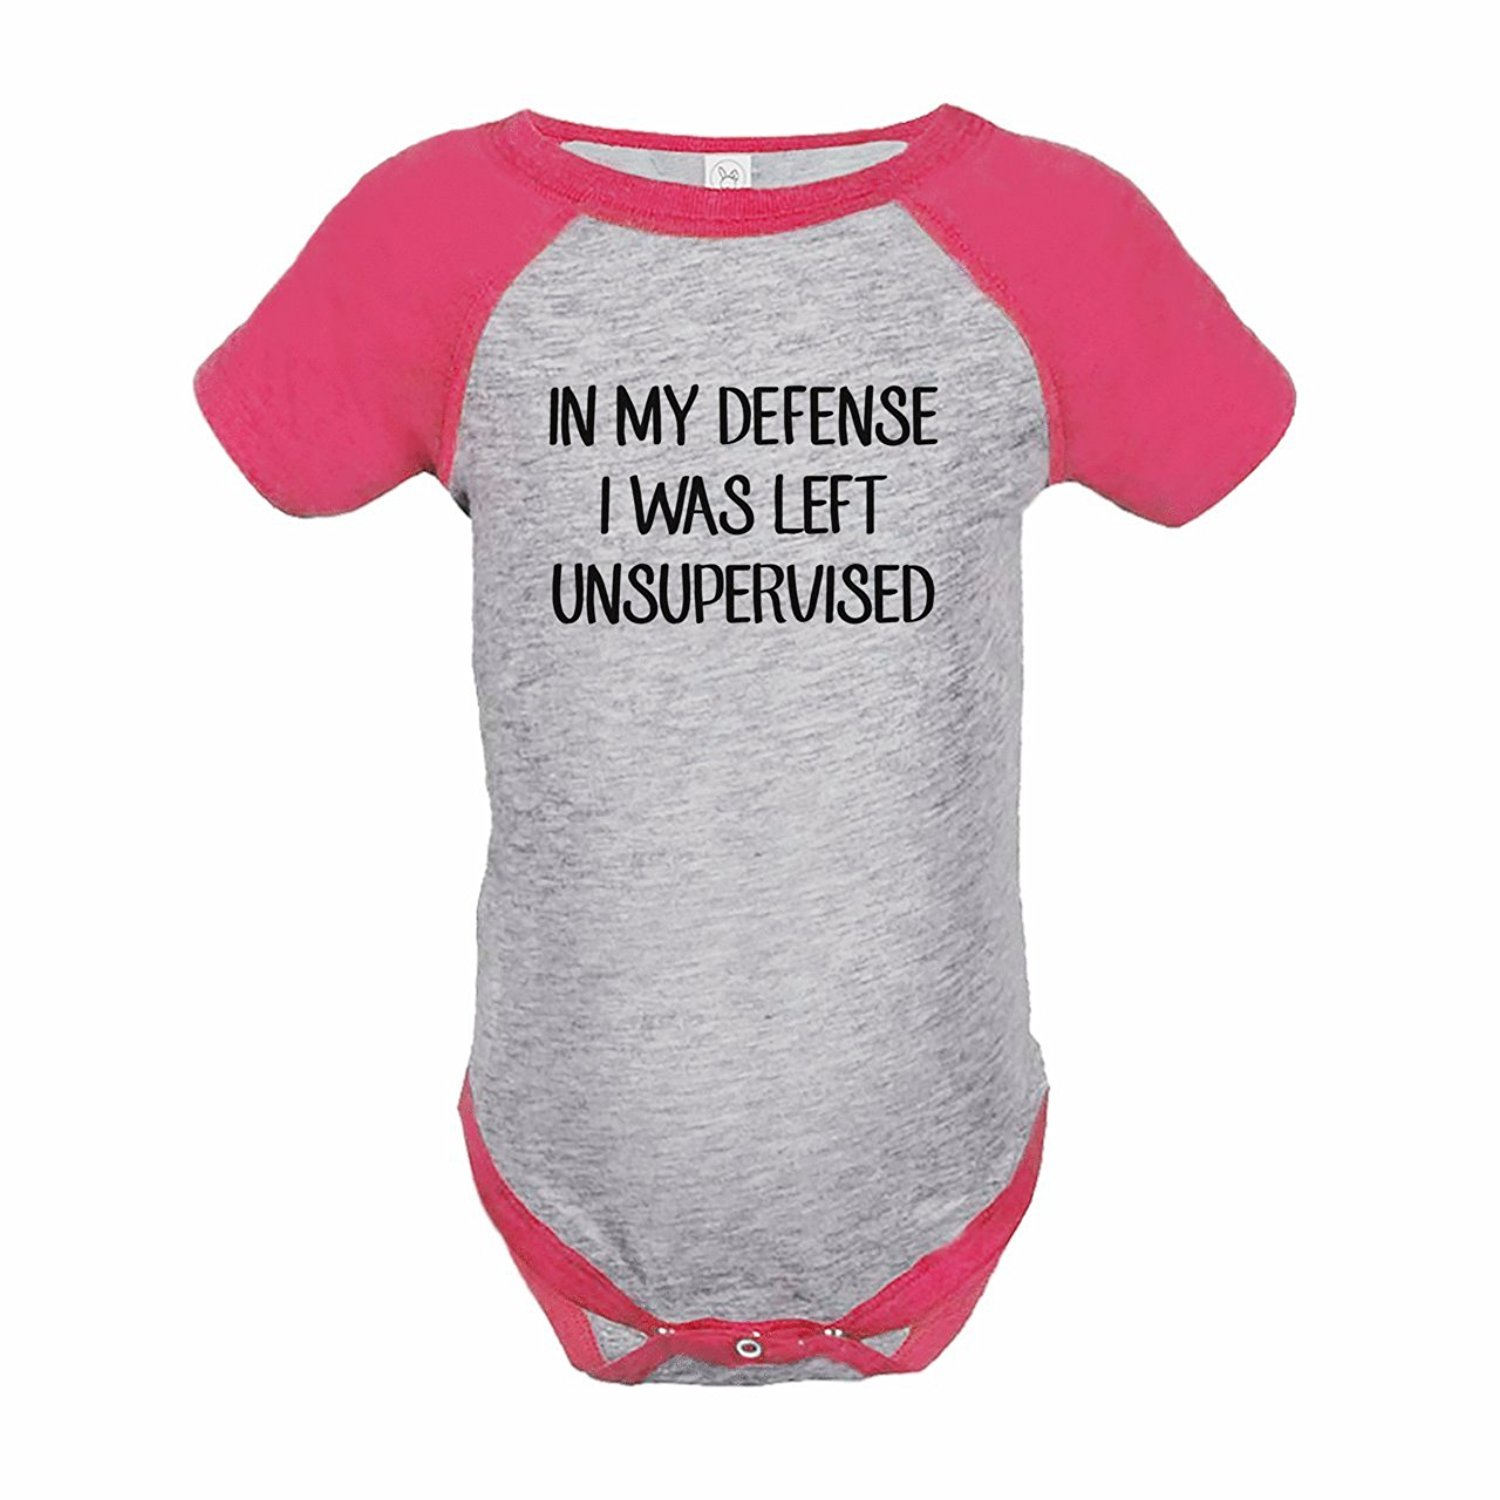 7 ate 9 Apparel Funny Kids Unsupervised Baseball Onepiece Pink - 6 Months